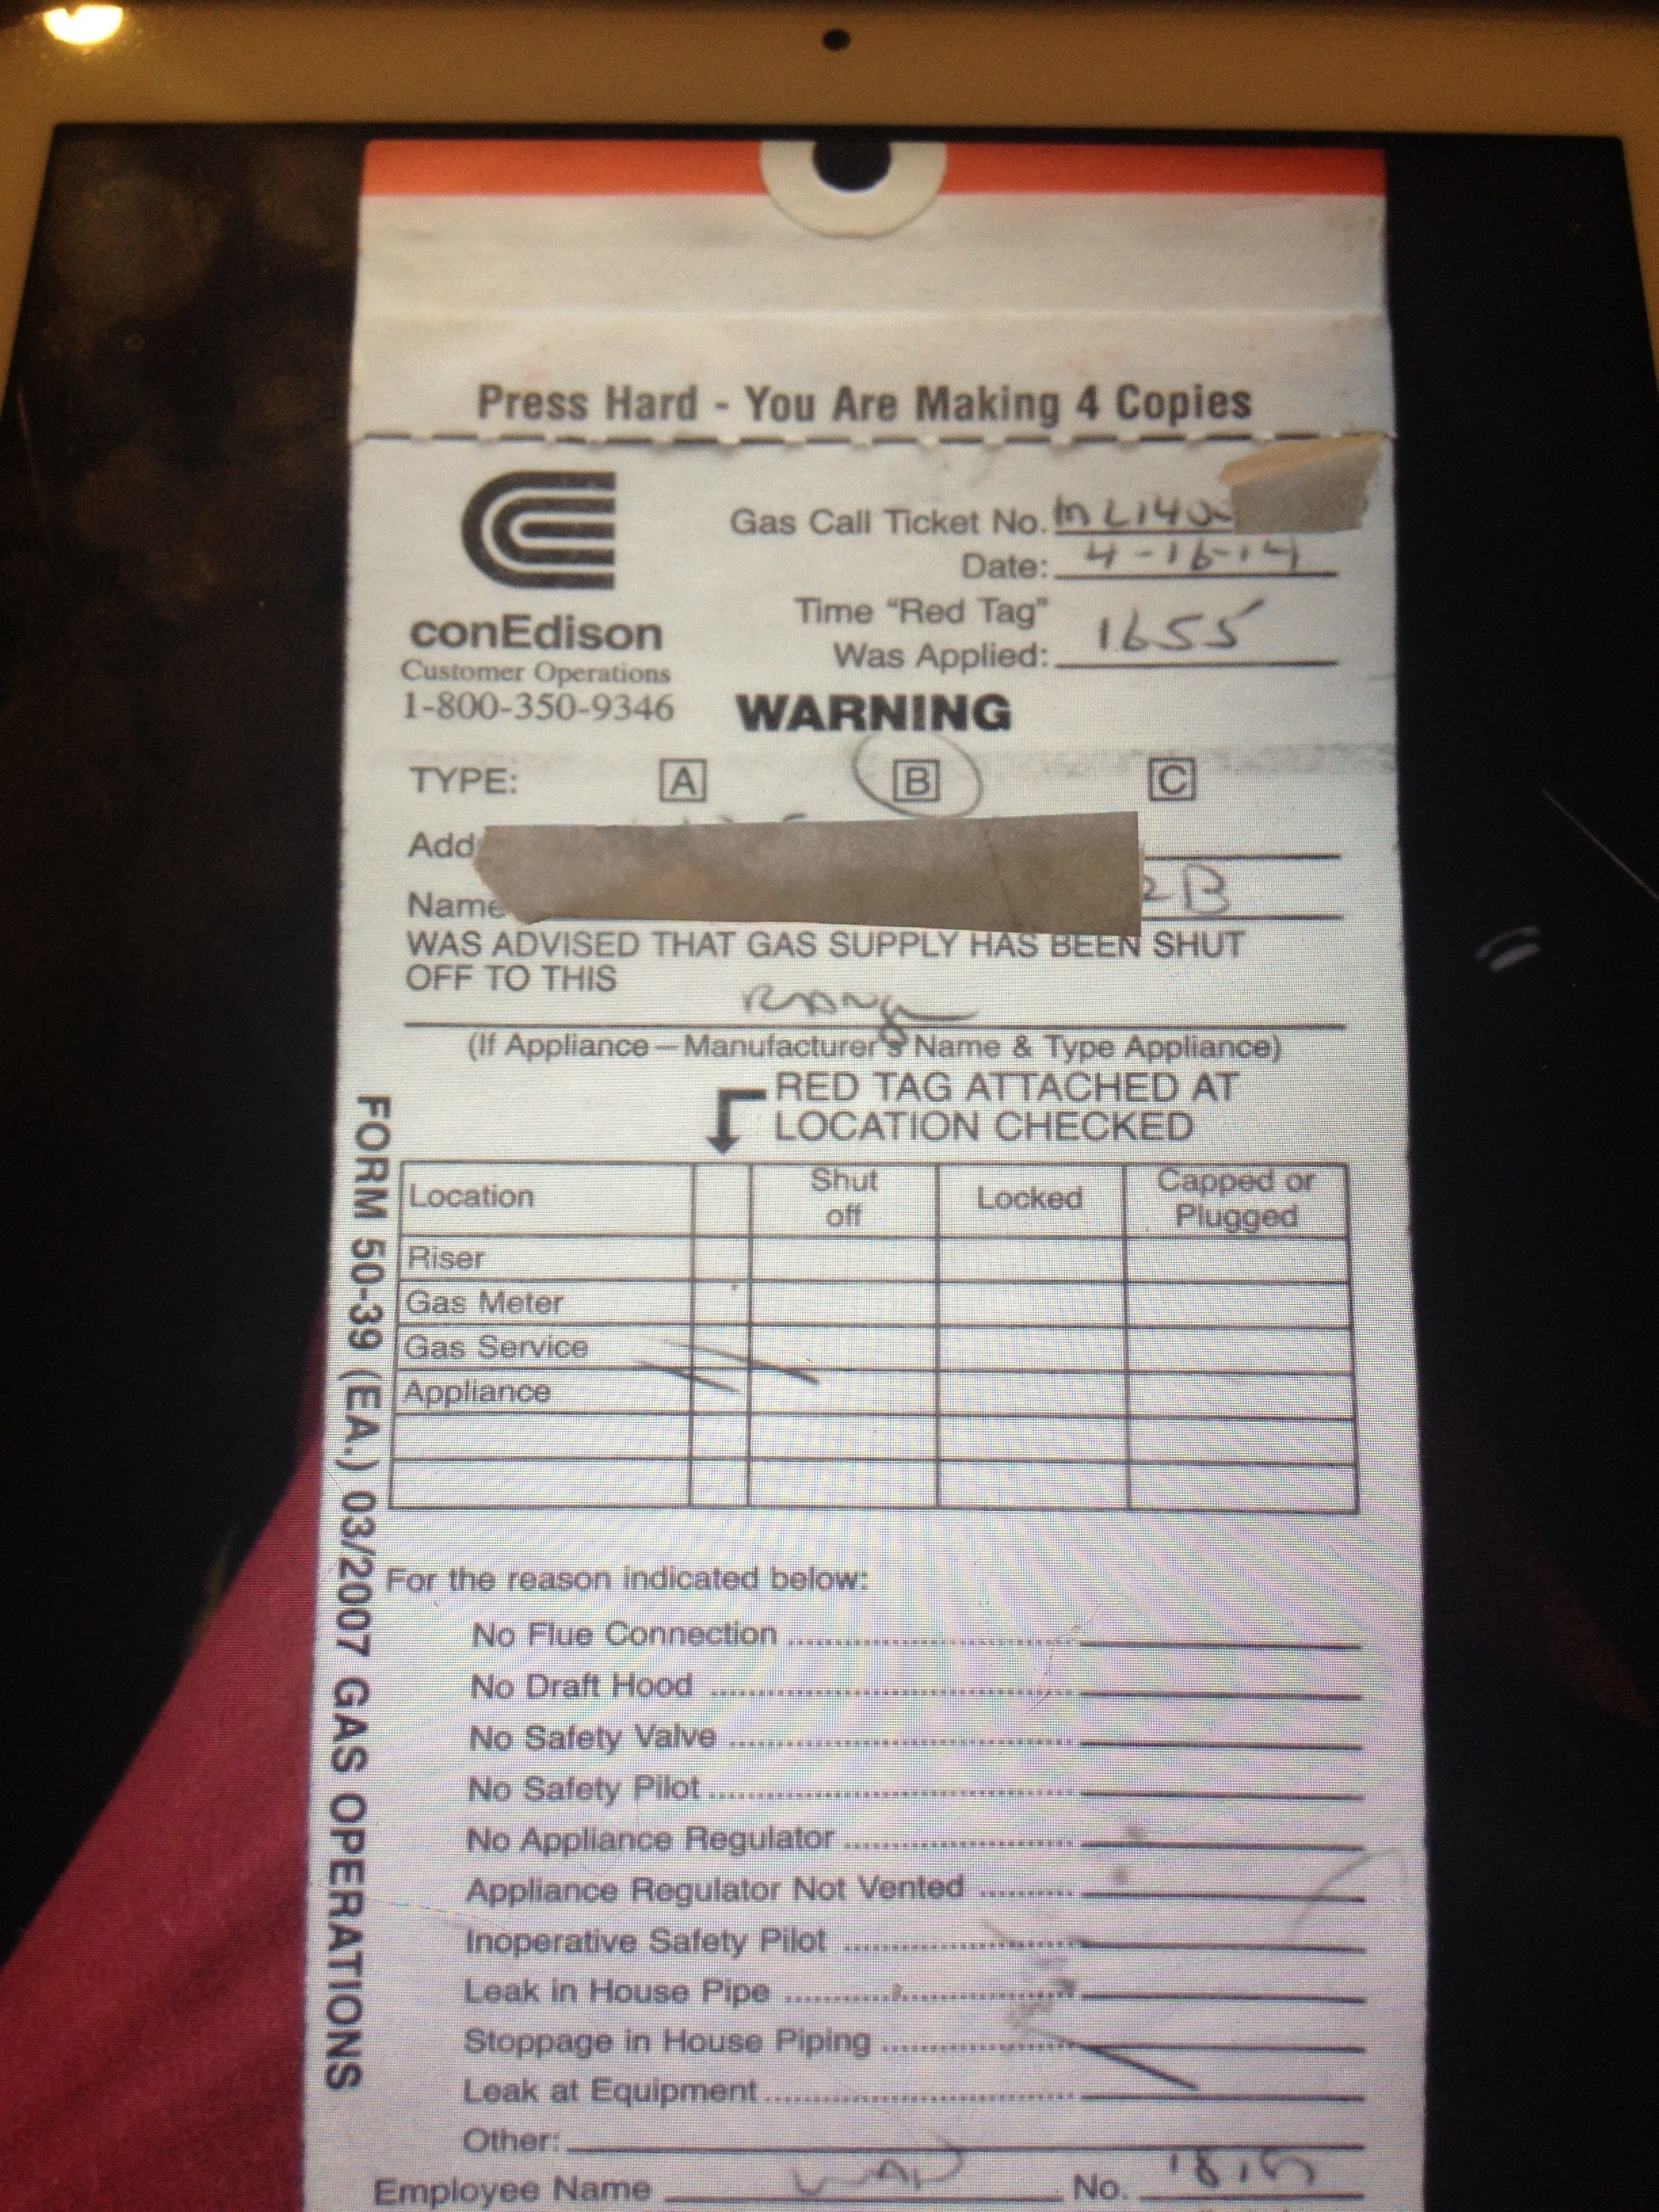 Ge Service Technician Top 441 Reviews And Complaints About Ge Ranges Page 6